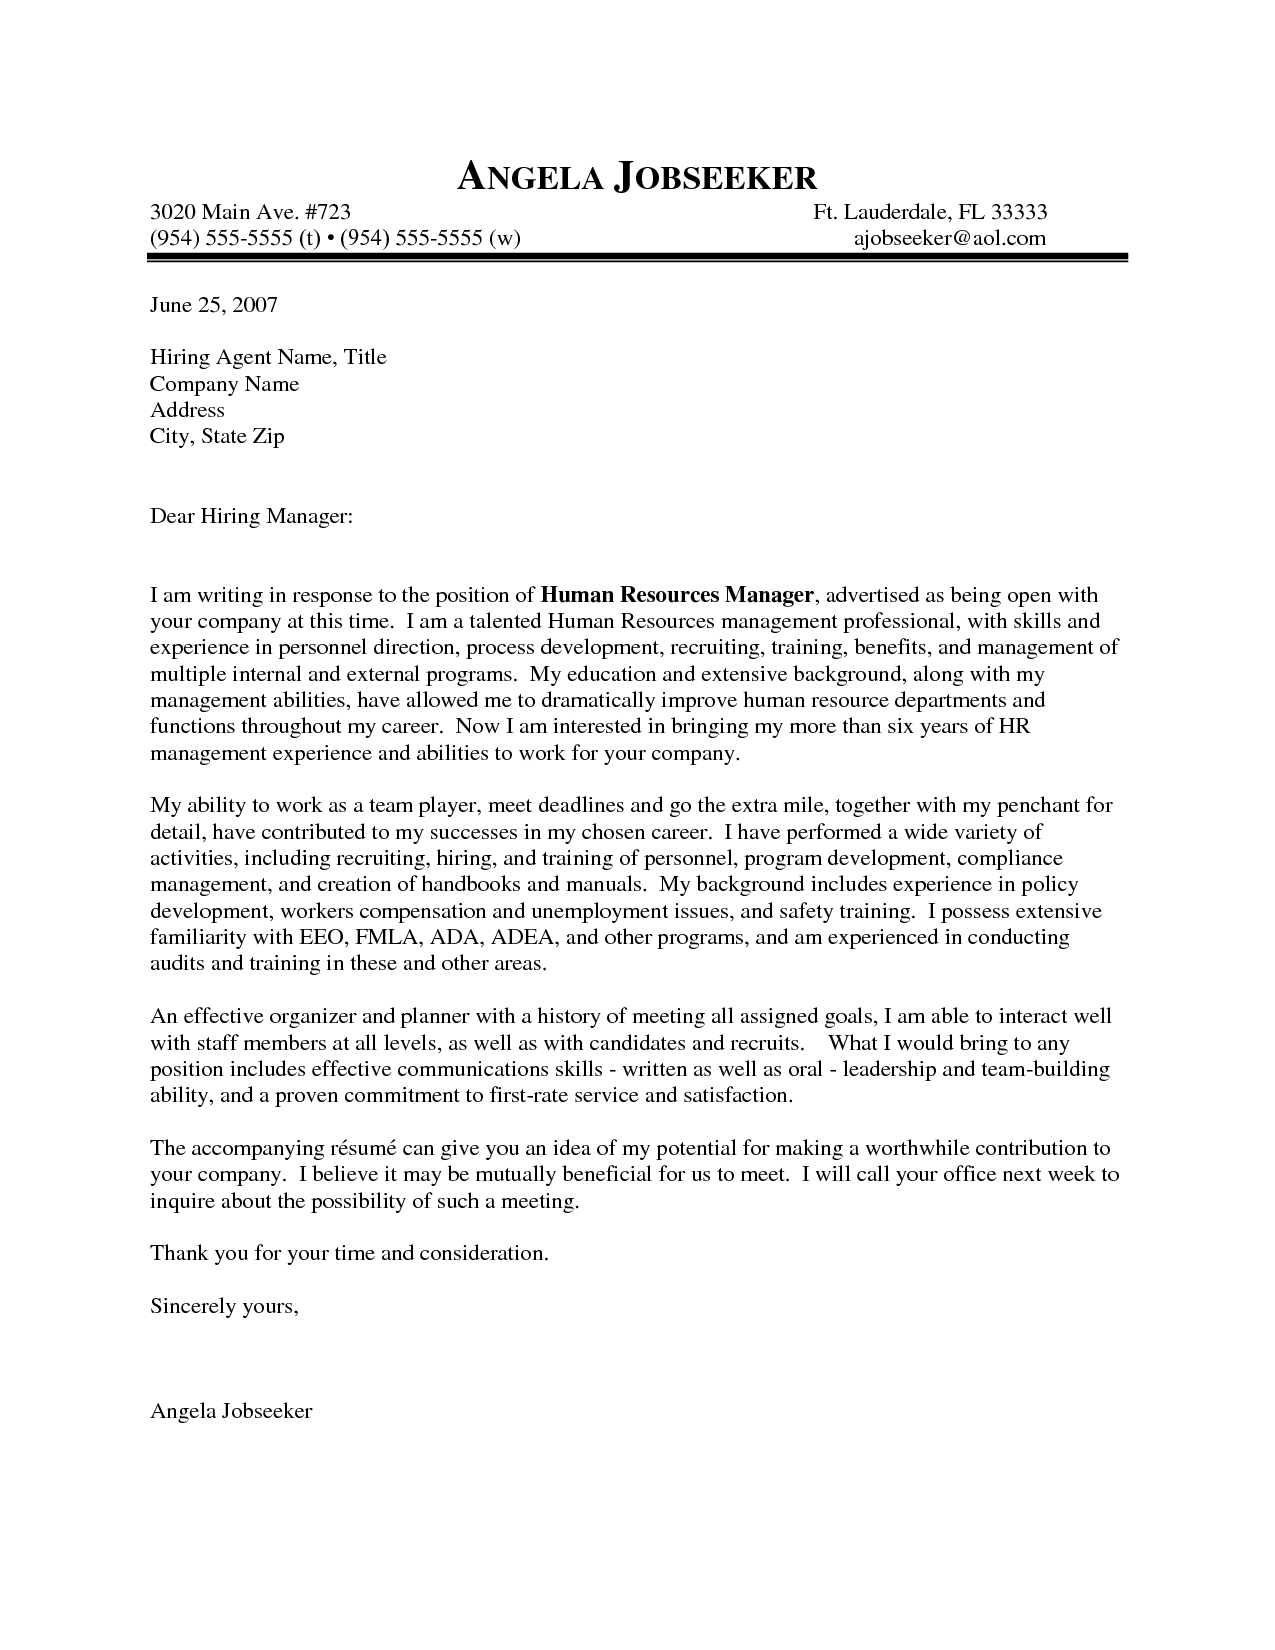 Cover Letter Template Human Resources | Job cover letter ...